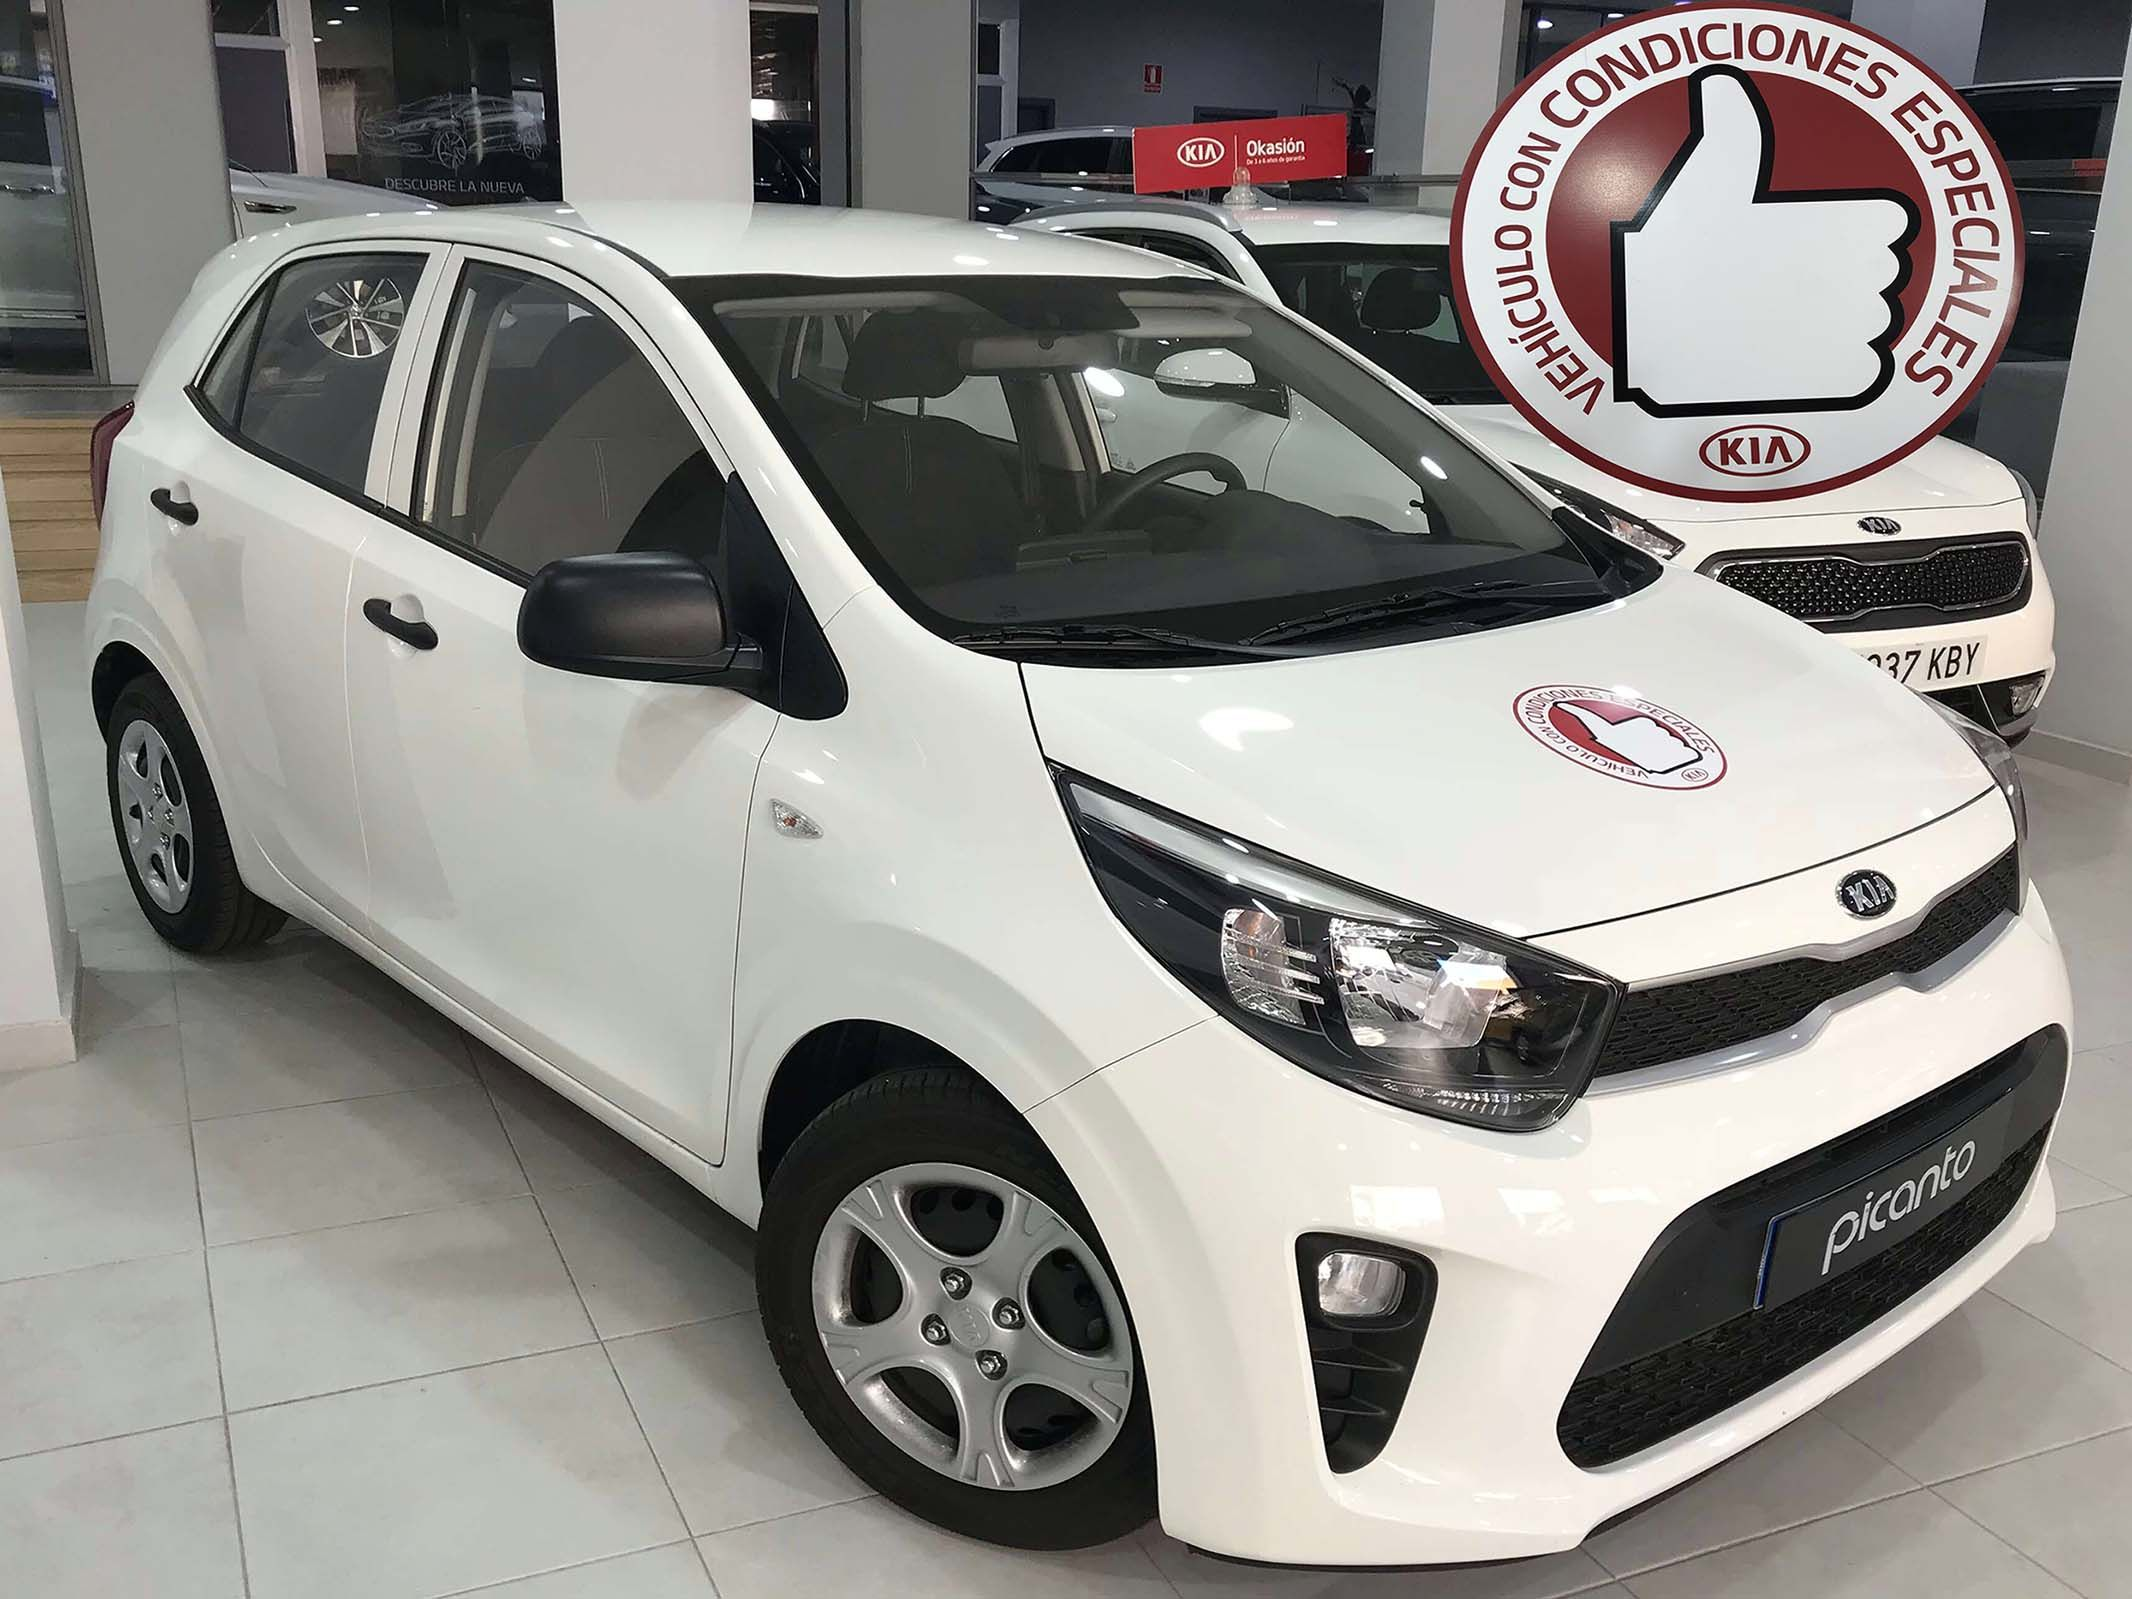 KIA PICANTO 1.0CVVT CONCEPT 66CV DRIVING ASSISTANCE PACK 7.800€ - RED LABEL